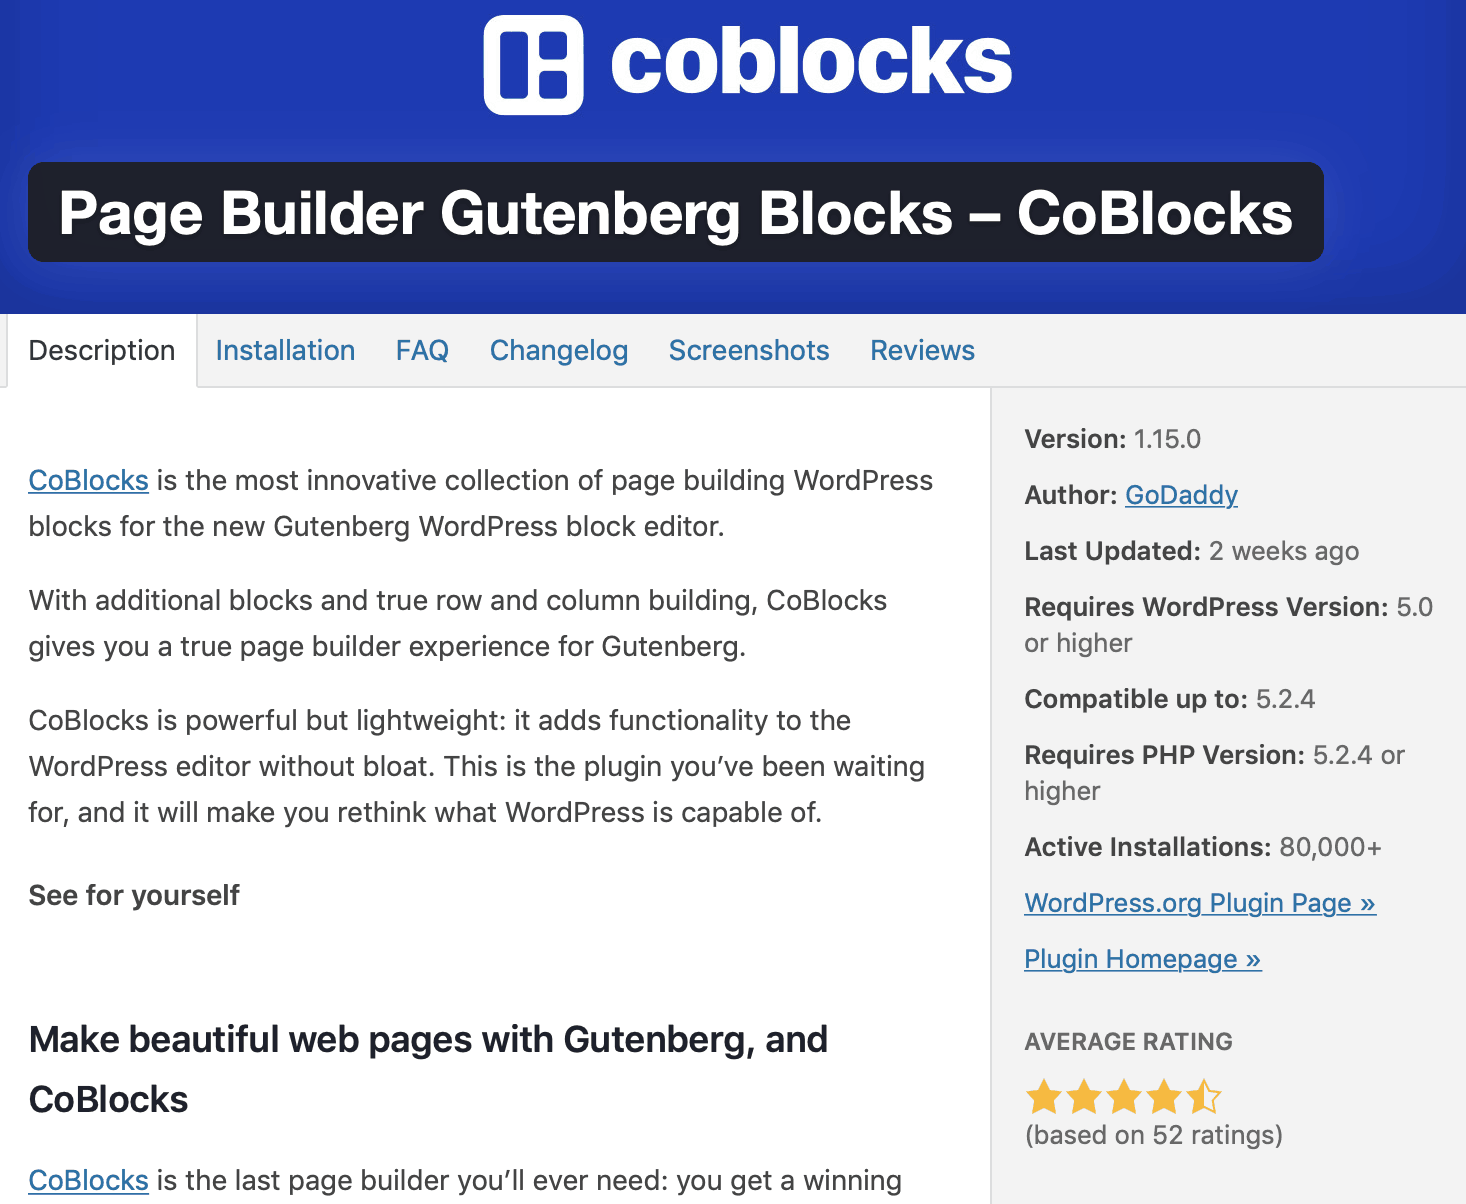 gutenberg blocks plugins coblocks